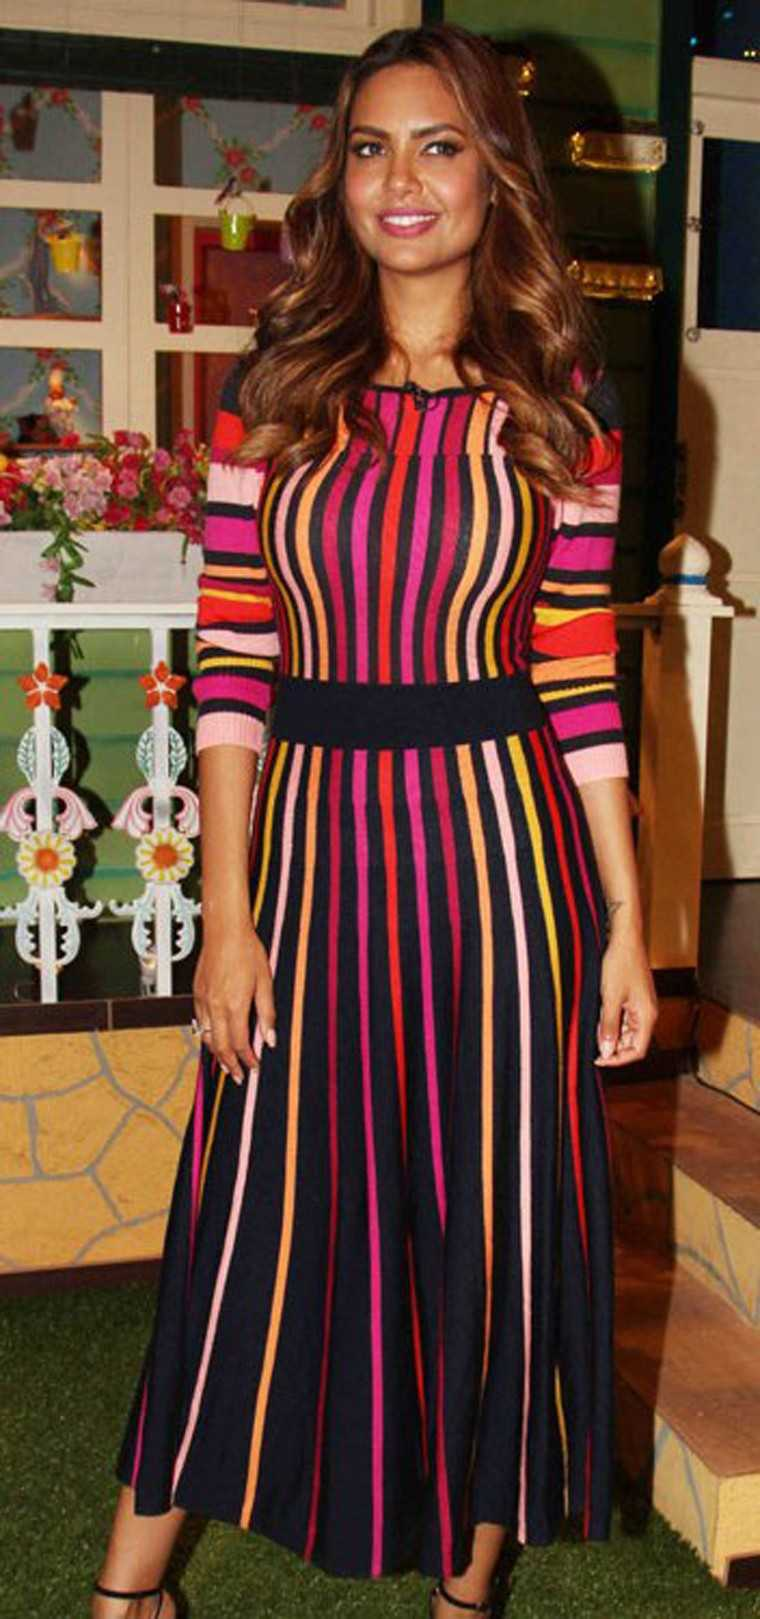 ESHA GUPTA: They key to wearing something with such a vibrant pattern, like these candy-hued lines on Esha's Temperley dress, is to make sure the silhouette and accessories remain ladylike.